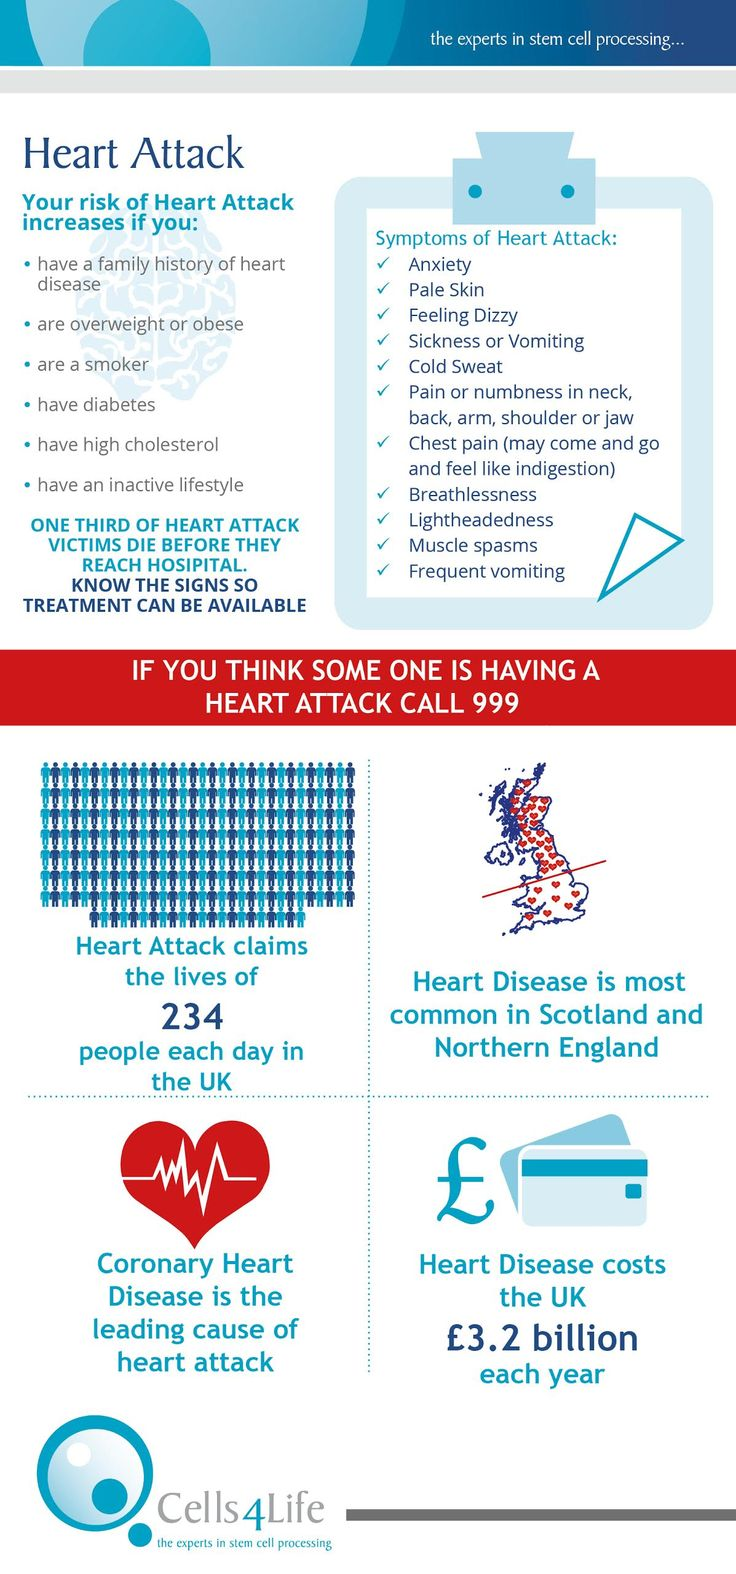 What are some causes of heart attacks?